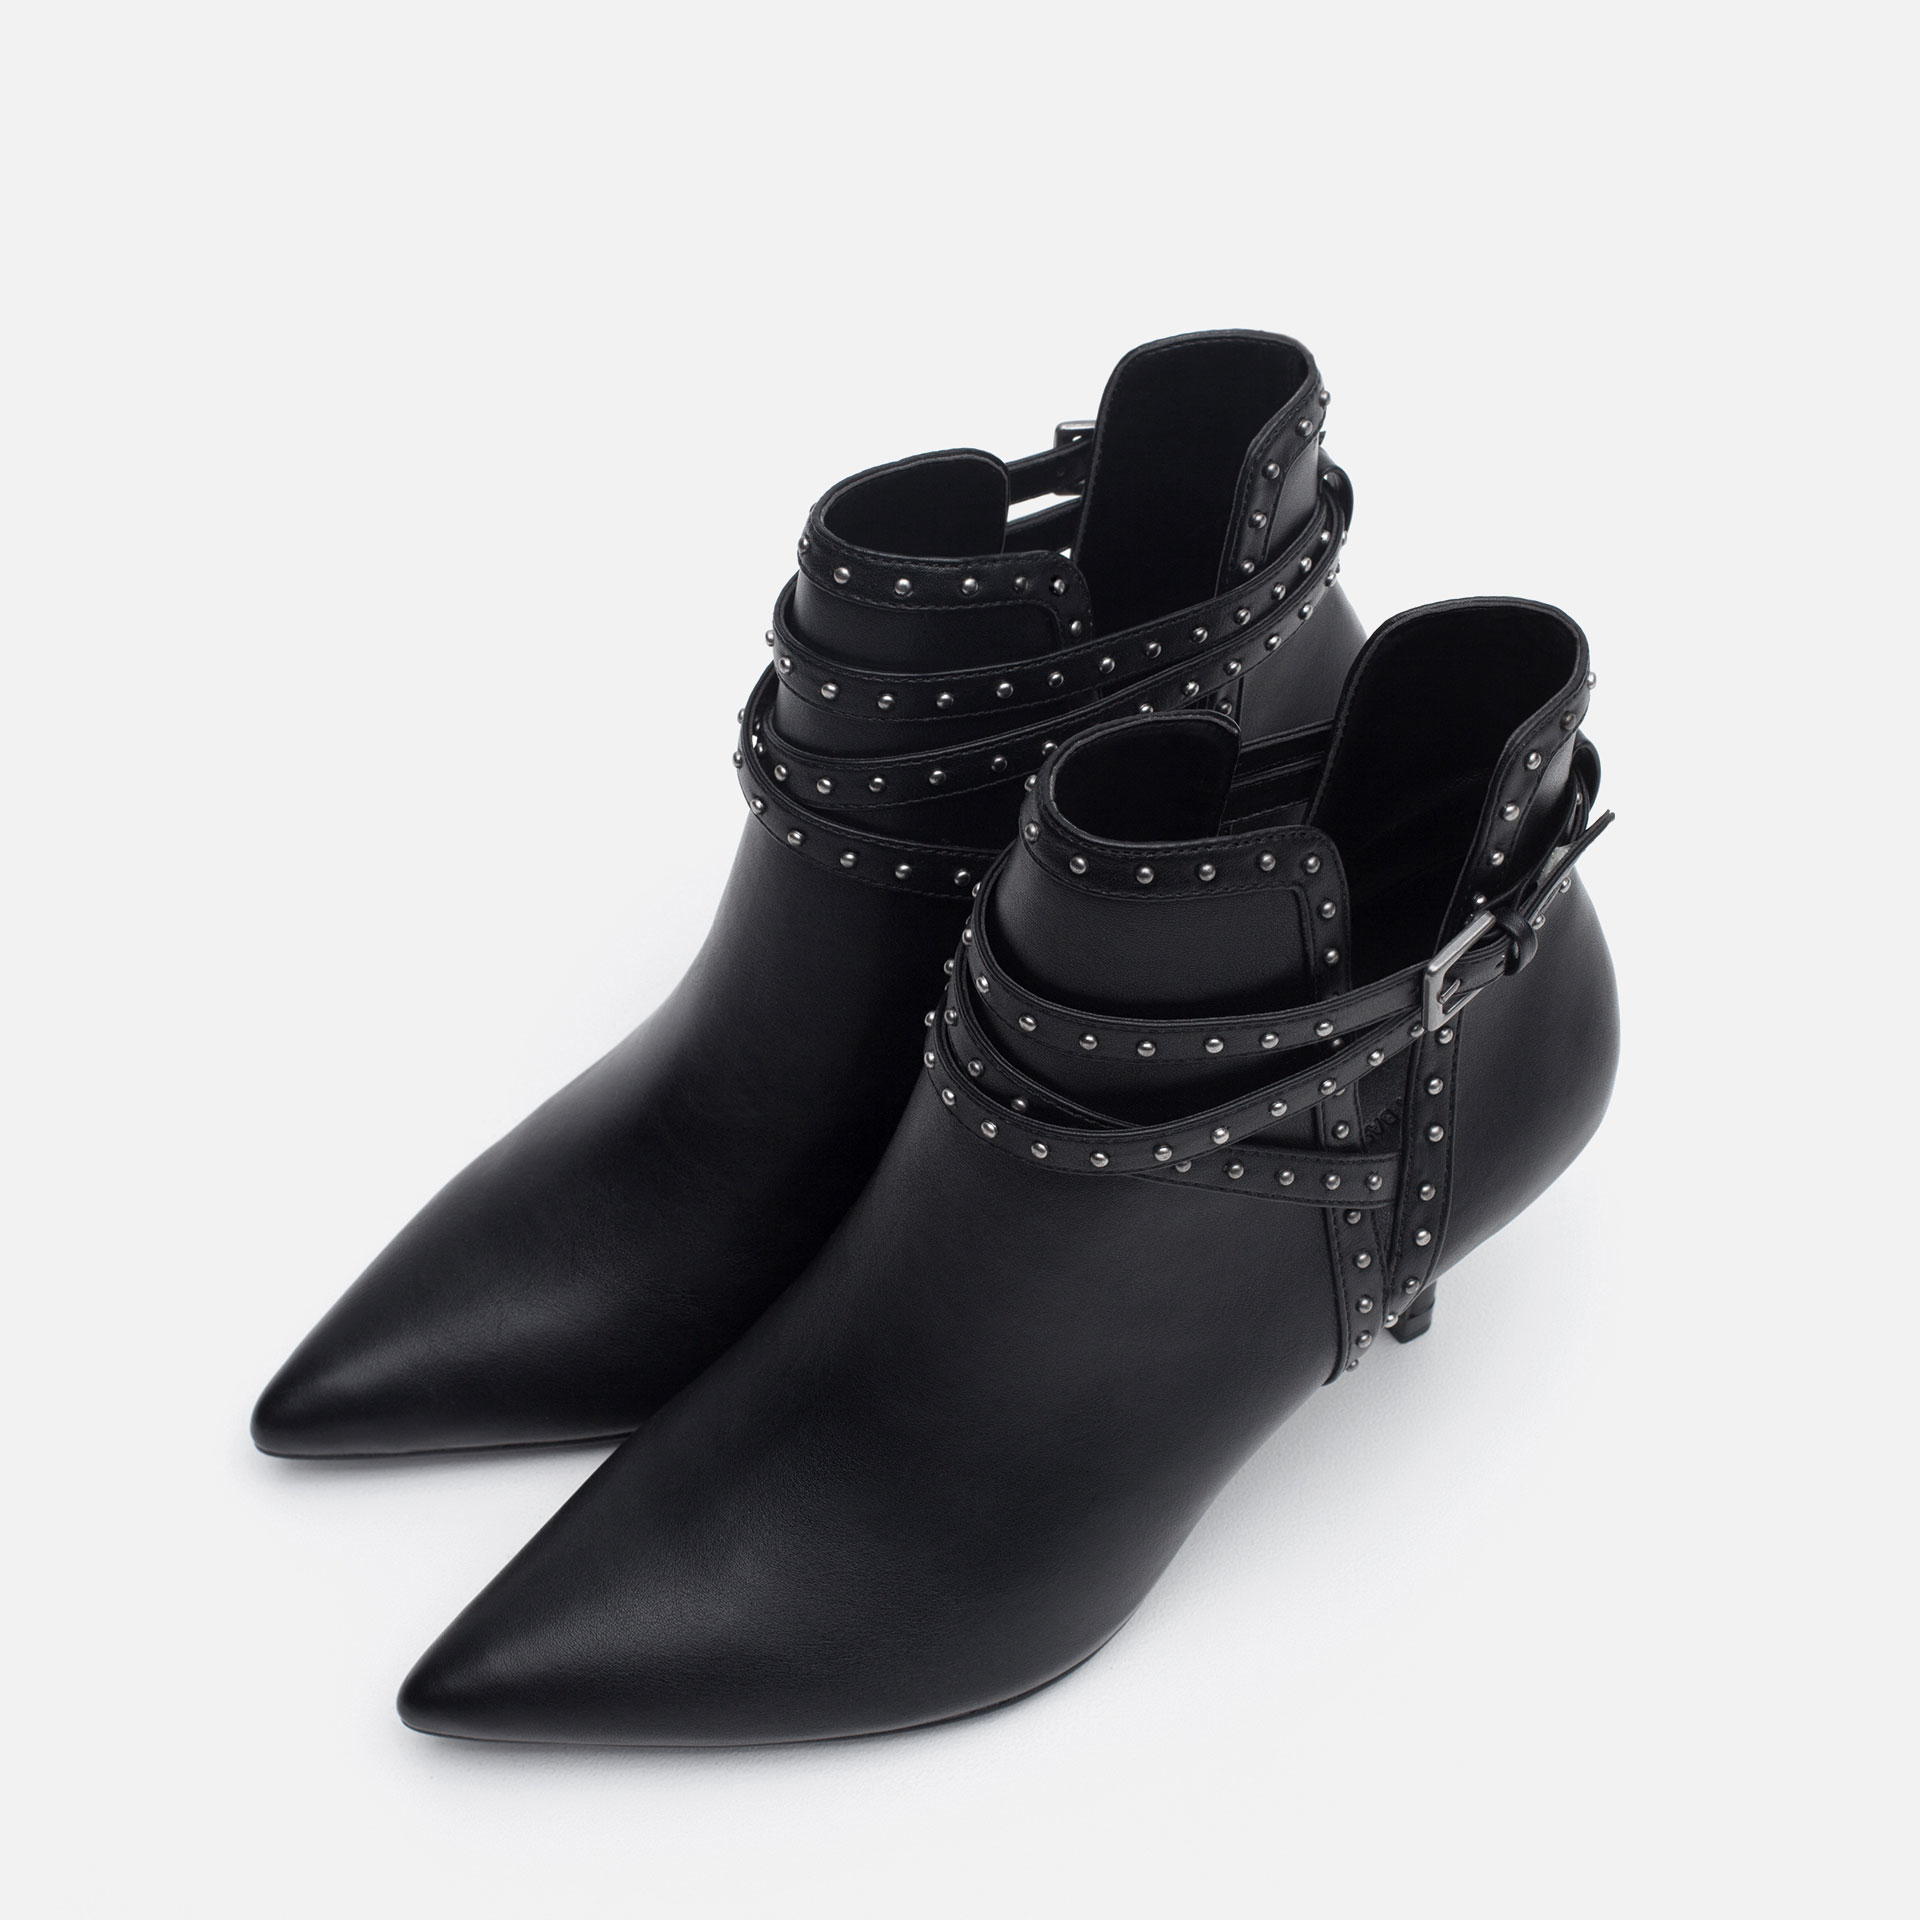 More Details Alexander Wang Kori Leather Lift-Heel Ankle Boot, Black Details Alexander Wang leather ankle boot. Pointed toe. Pull-tab on backstay for ease of dress. Covered stretch insets at sides. Tilt-effect heel with rose golden plate detail.